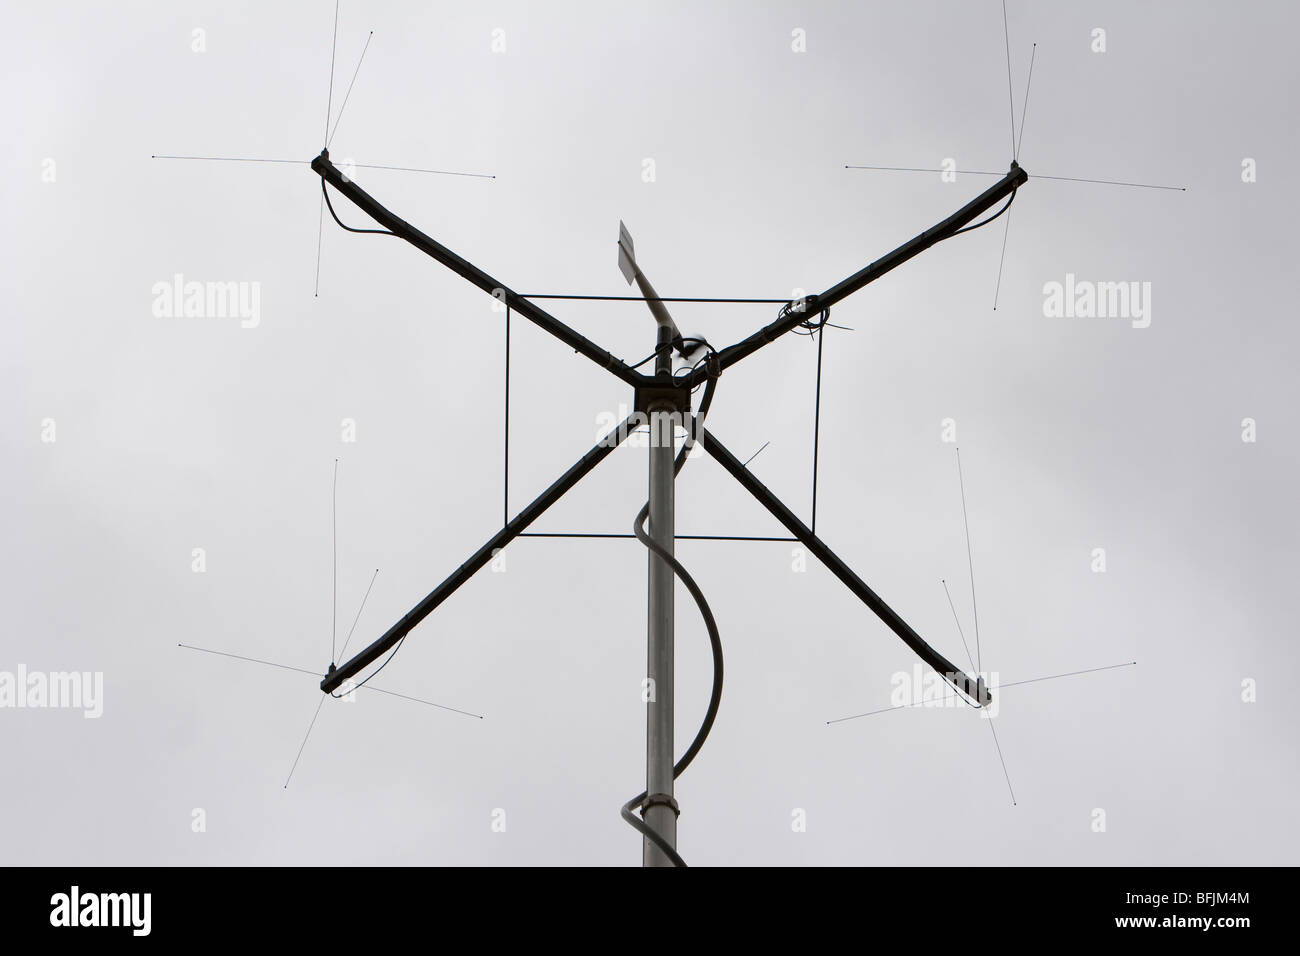 The top of a mobile repeater mast in western Kansas, USA, June 10, 2009. - Stock Image